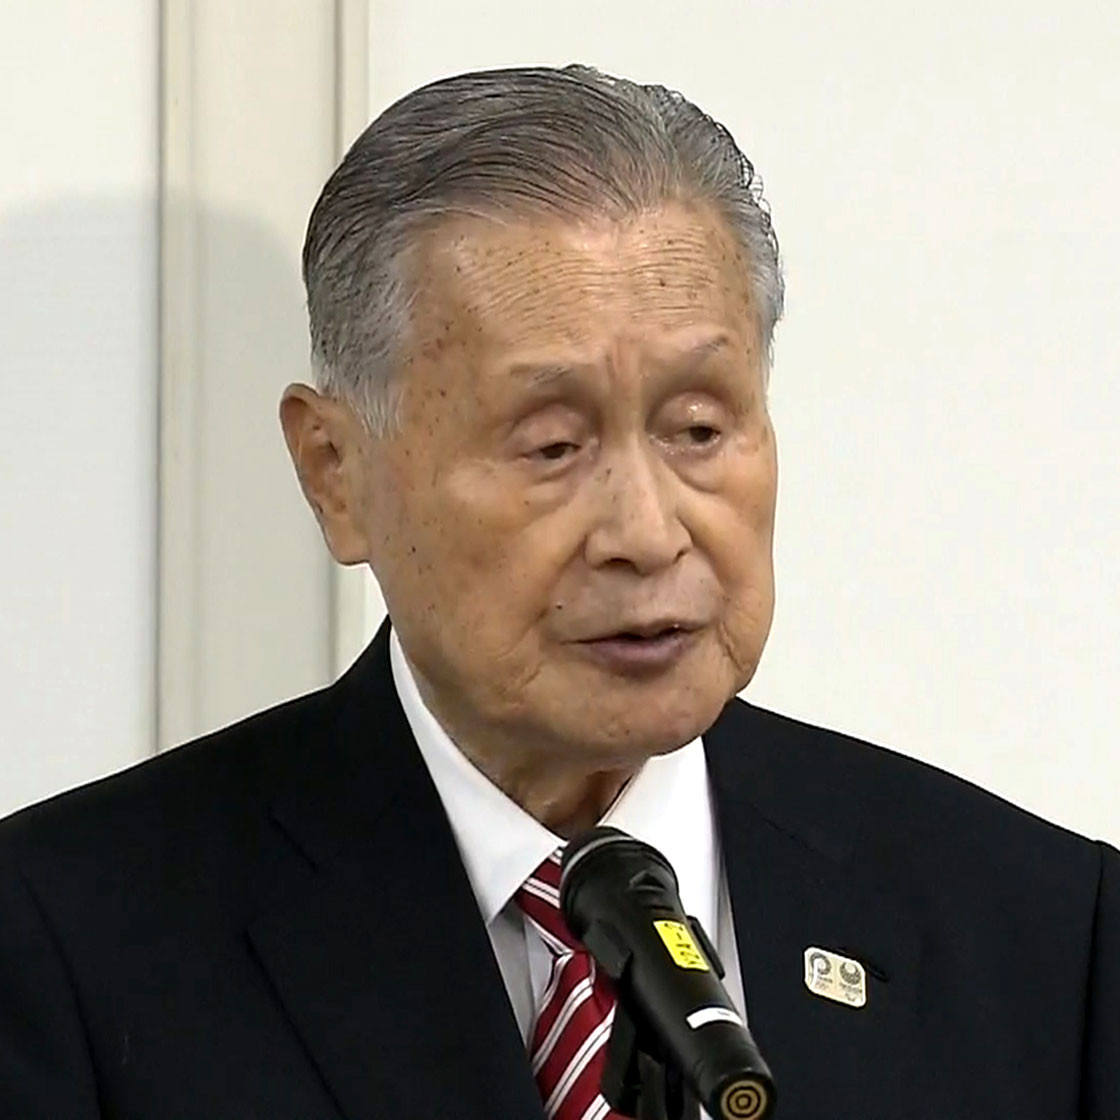 Tokyo Olympic chief apologizes for comments about women